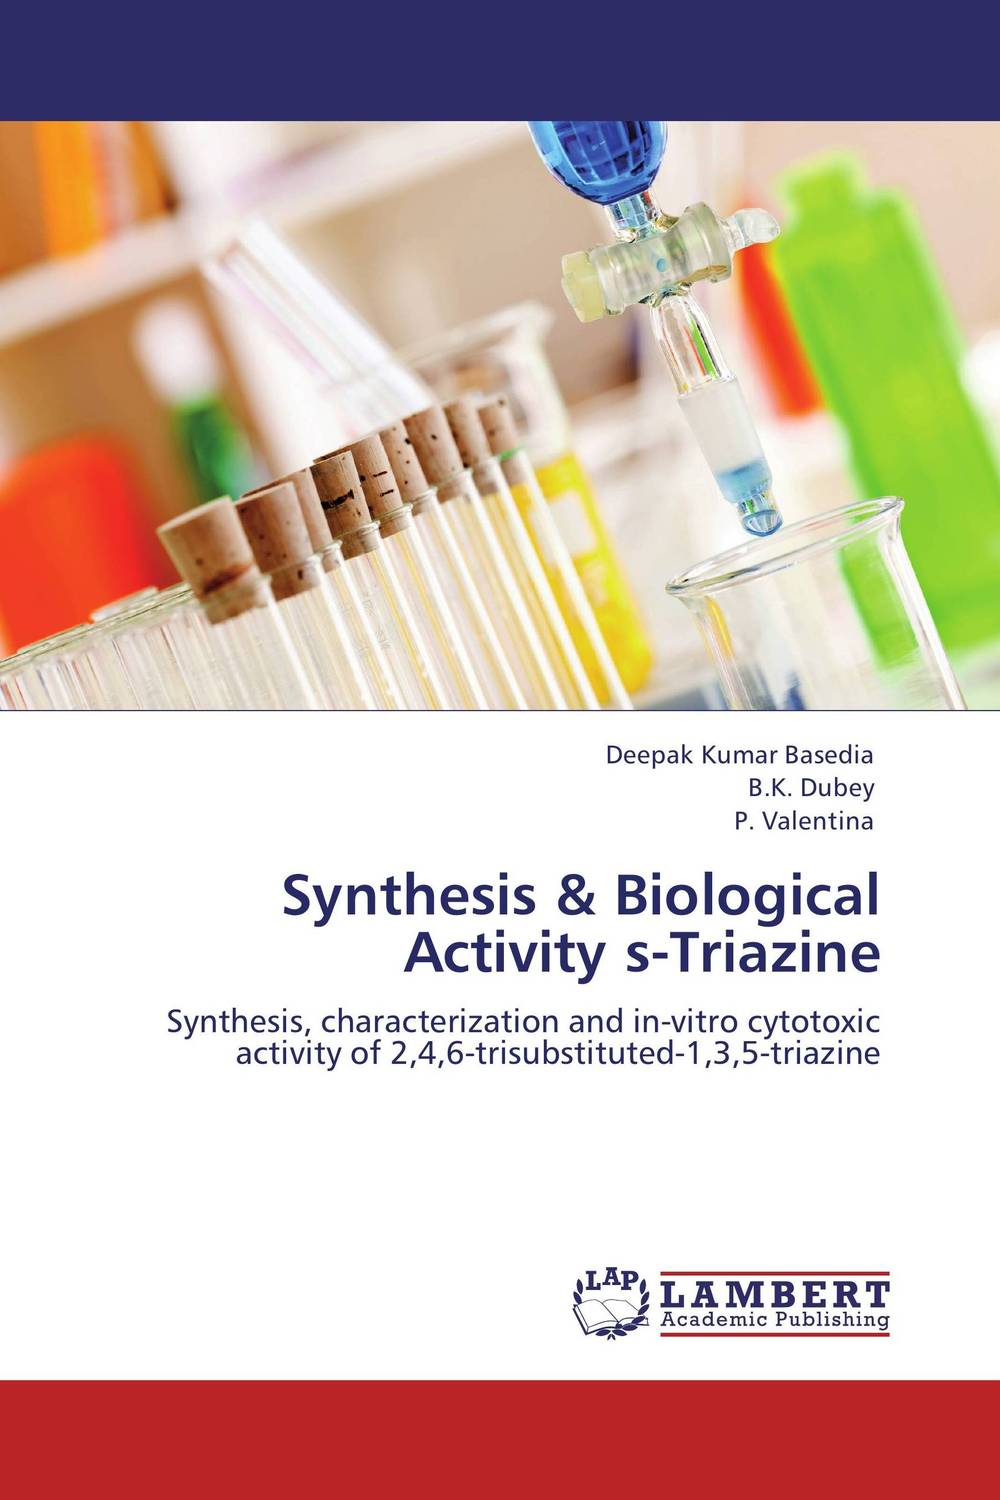 Synthesis & Biological Activity s-Triazine d rakesh s s kalyan kamal and sumair faisal ahmed synthesis